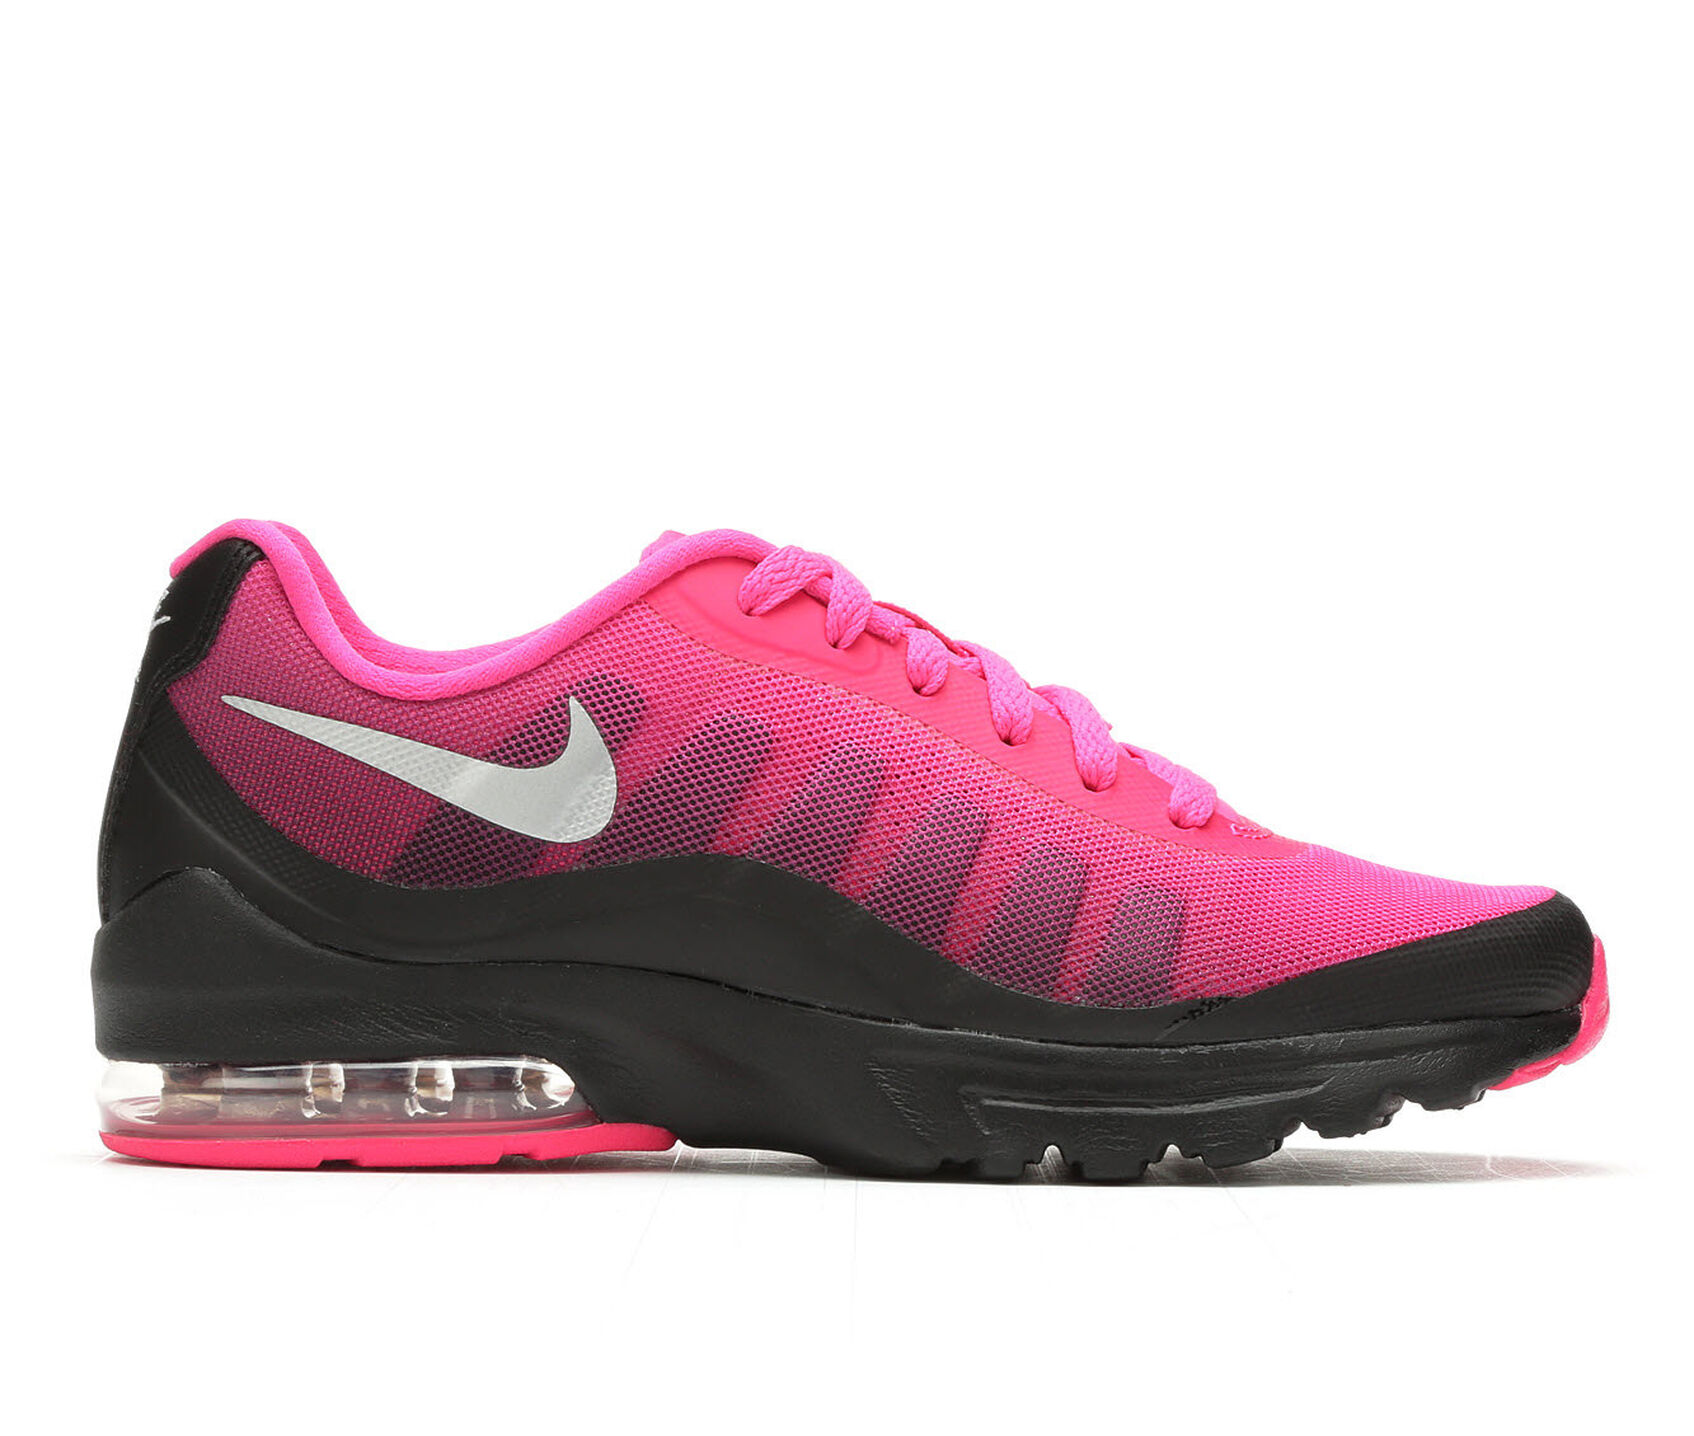 f3ca37648b Women's Nike Air Max Invigor Print Athletic Sneakers | Shoe Carnival